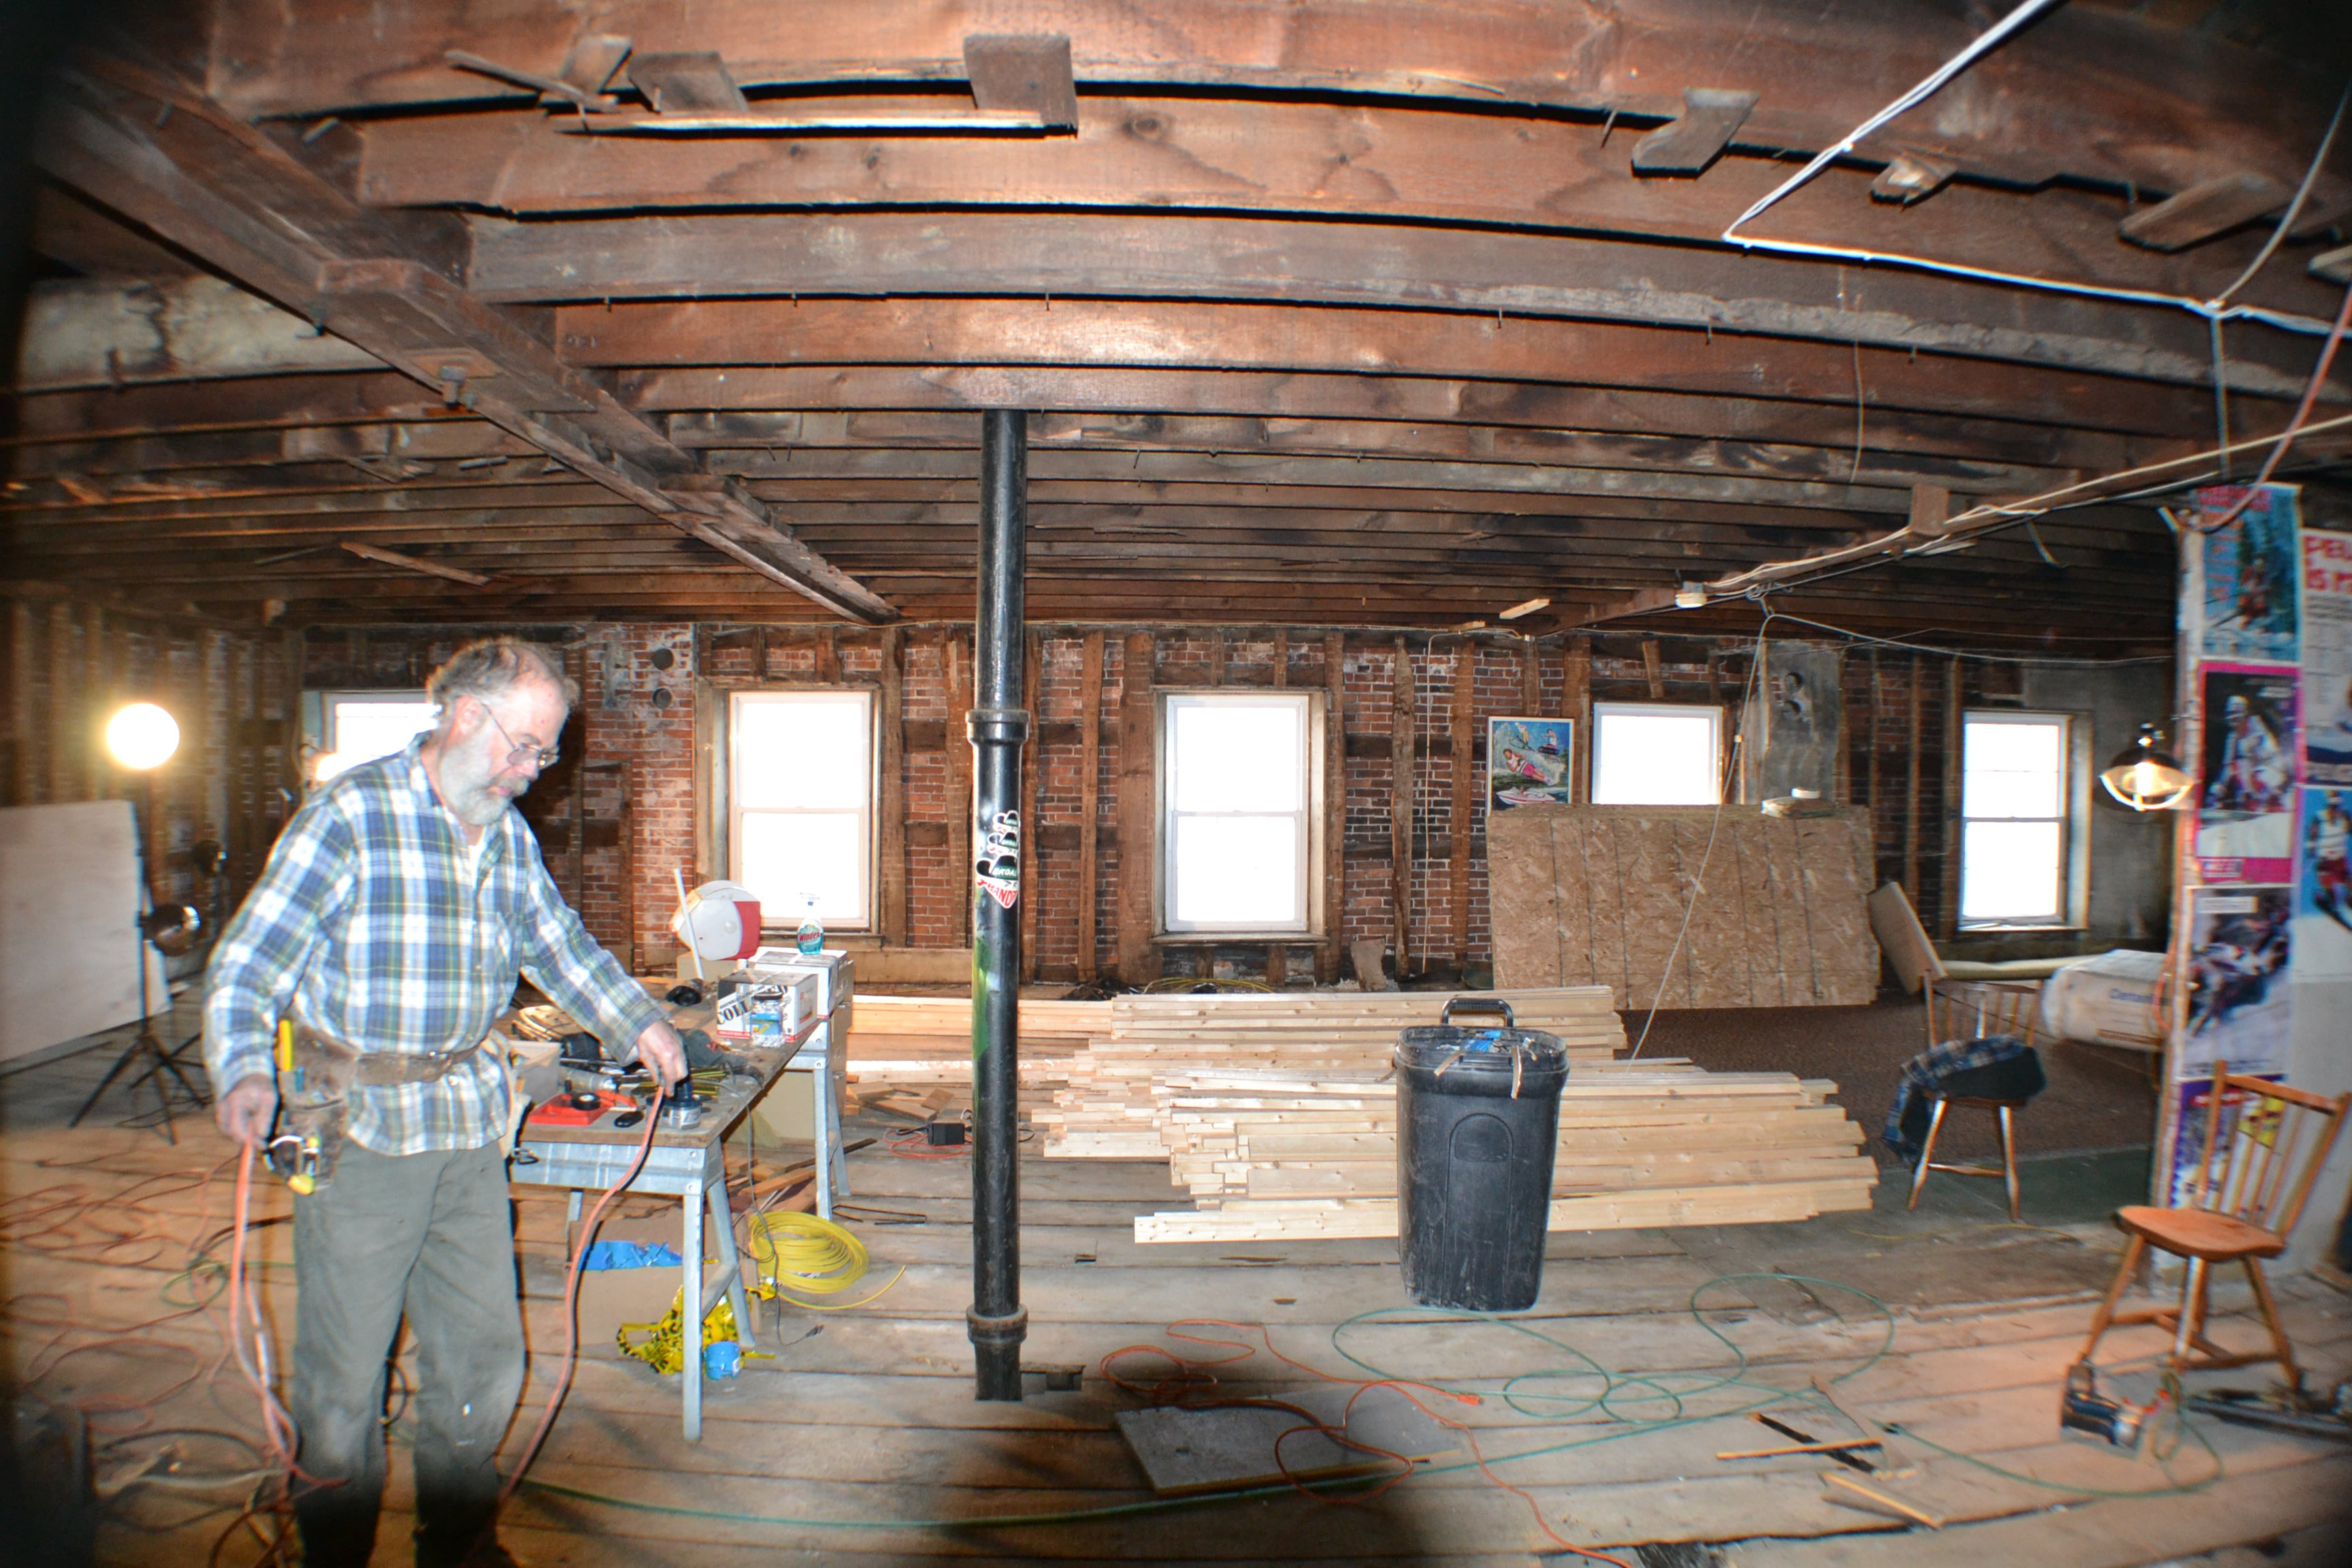 Carl working on the new studio